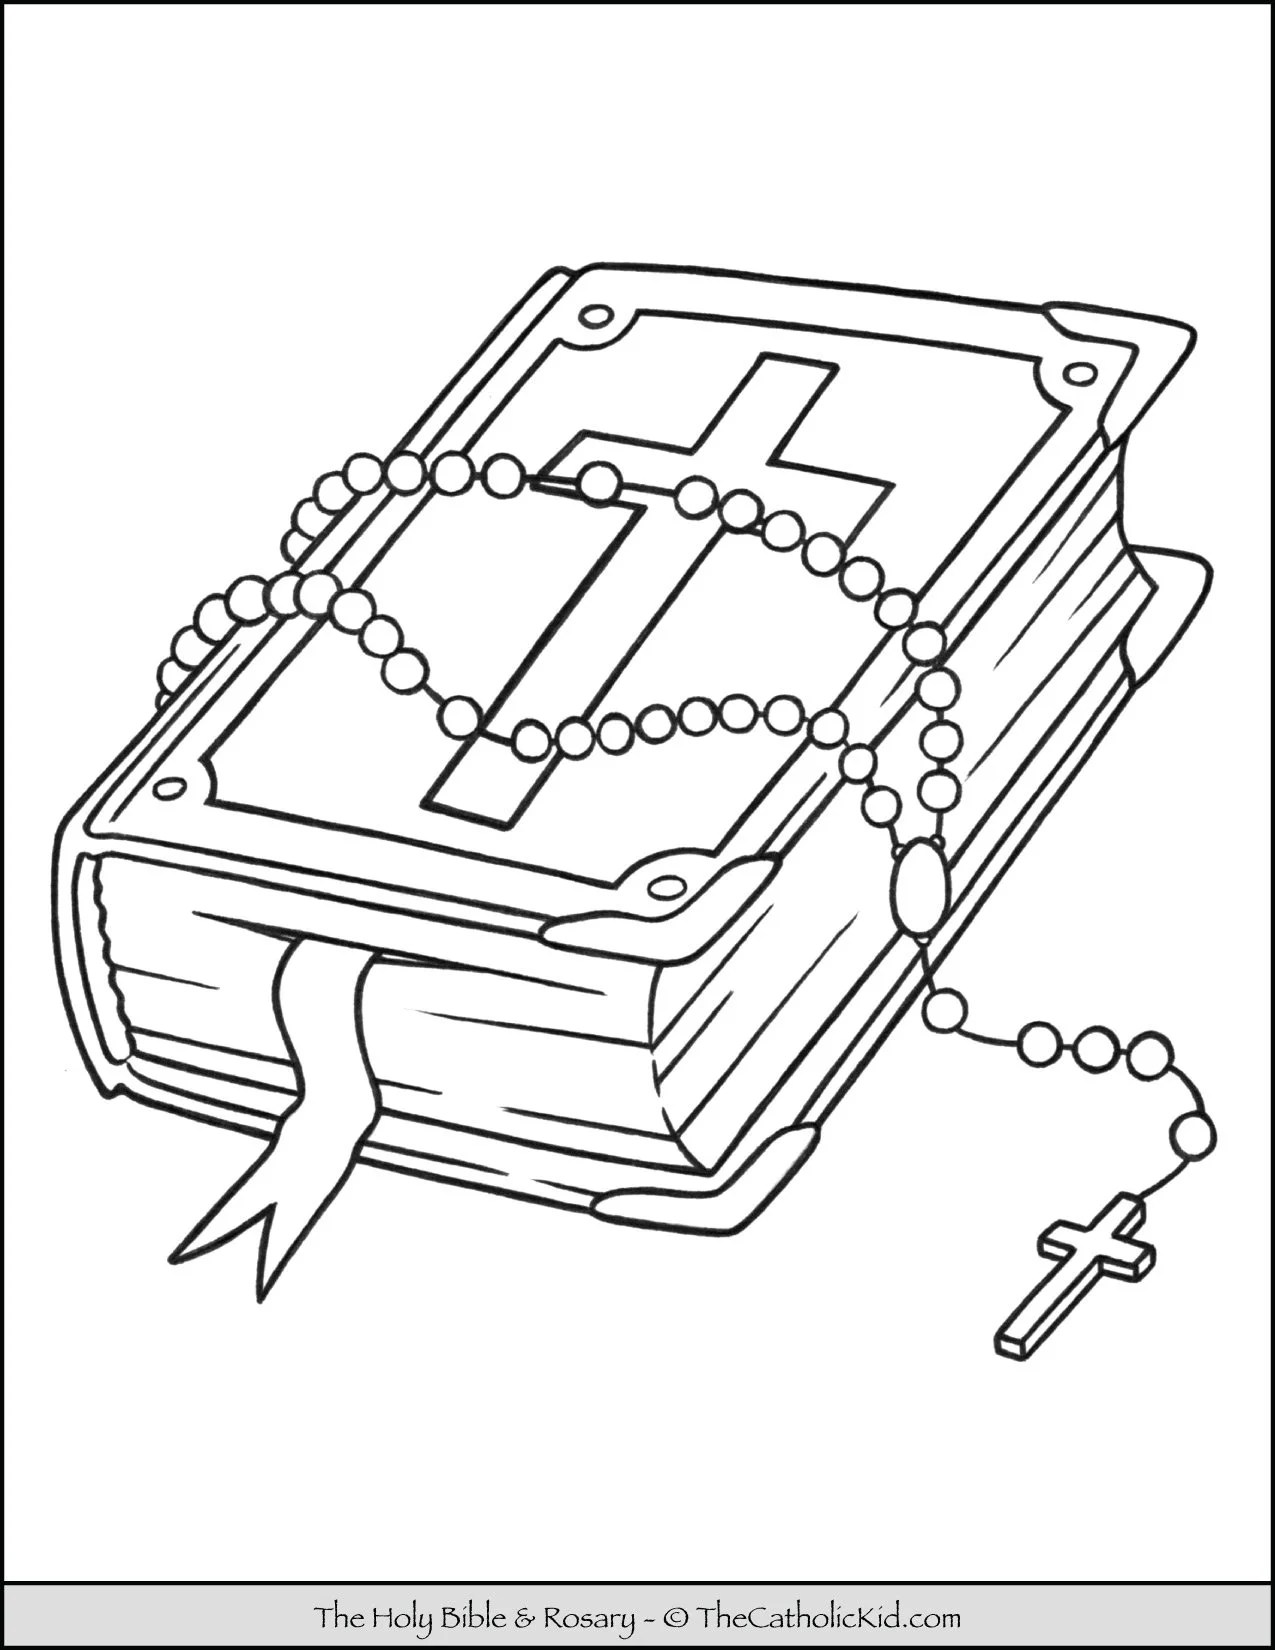 Rosary Amp Bible Coloring Page